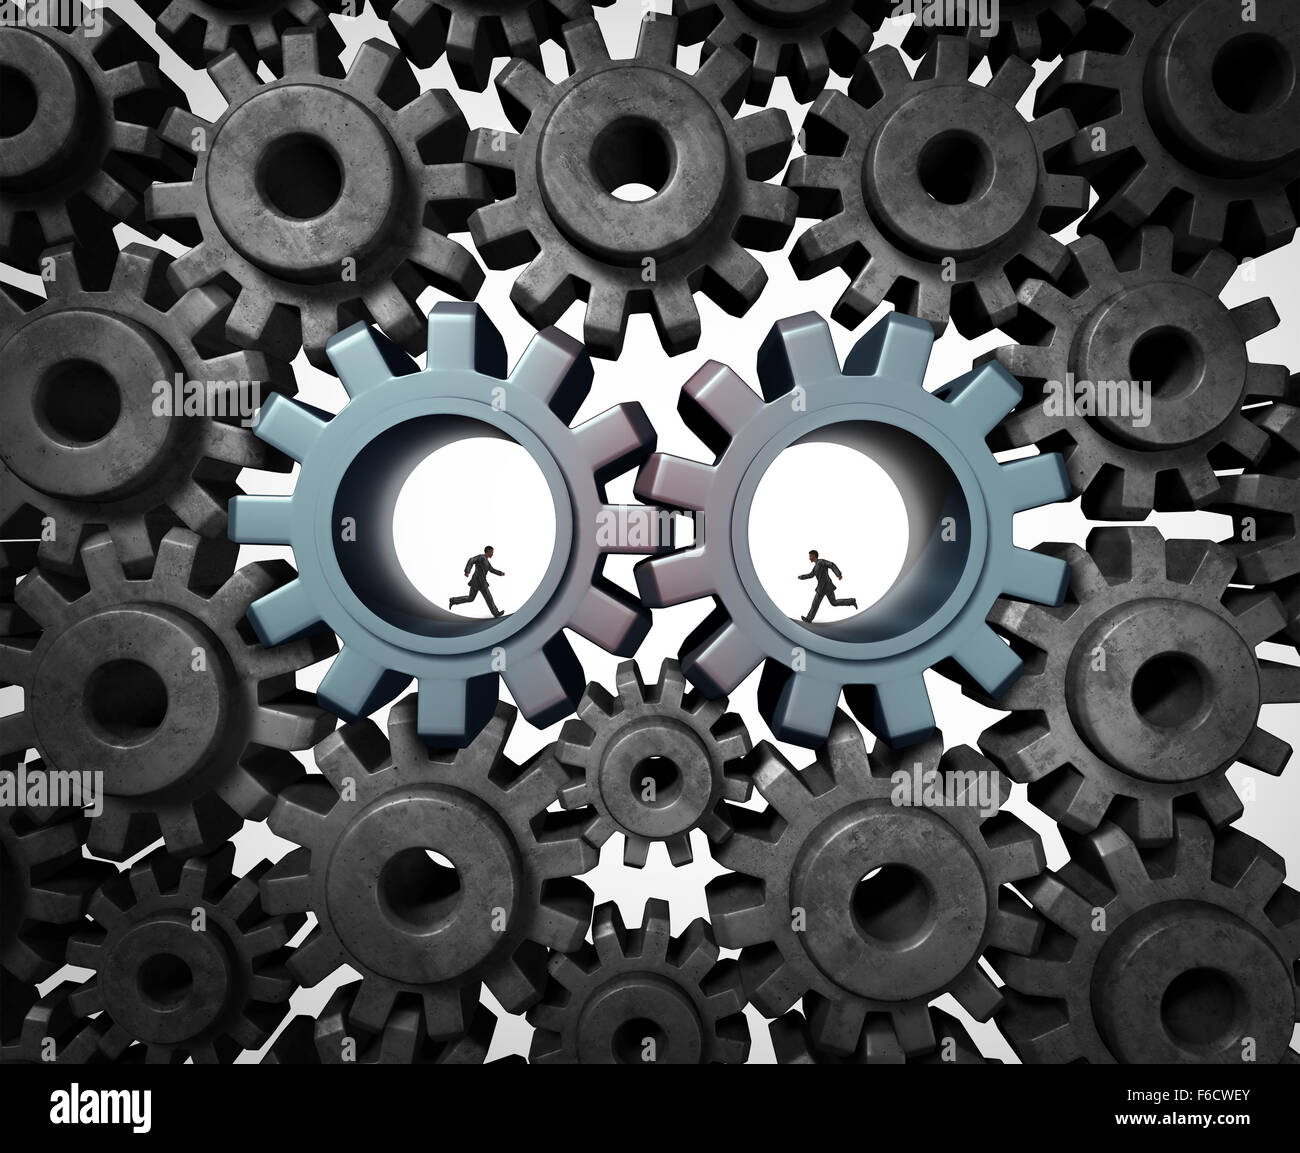 Industry partnership business planning concept as a team of businesspeople running inside a gear or cog wheel working - Stock Image